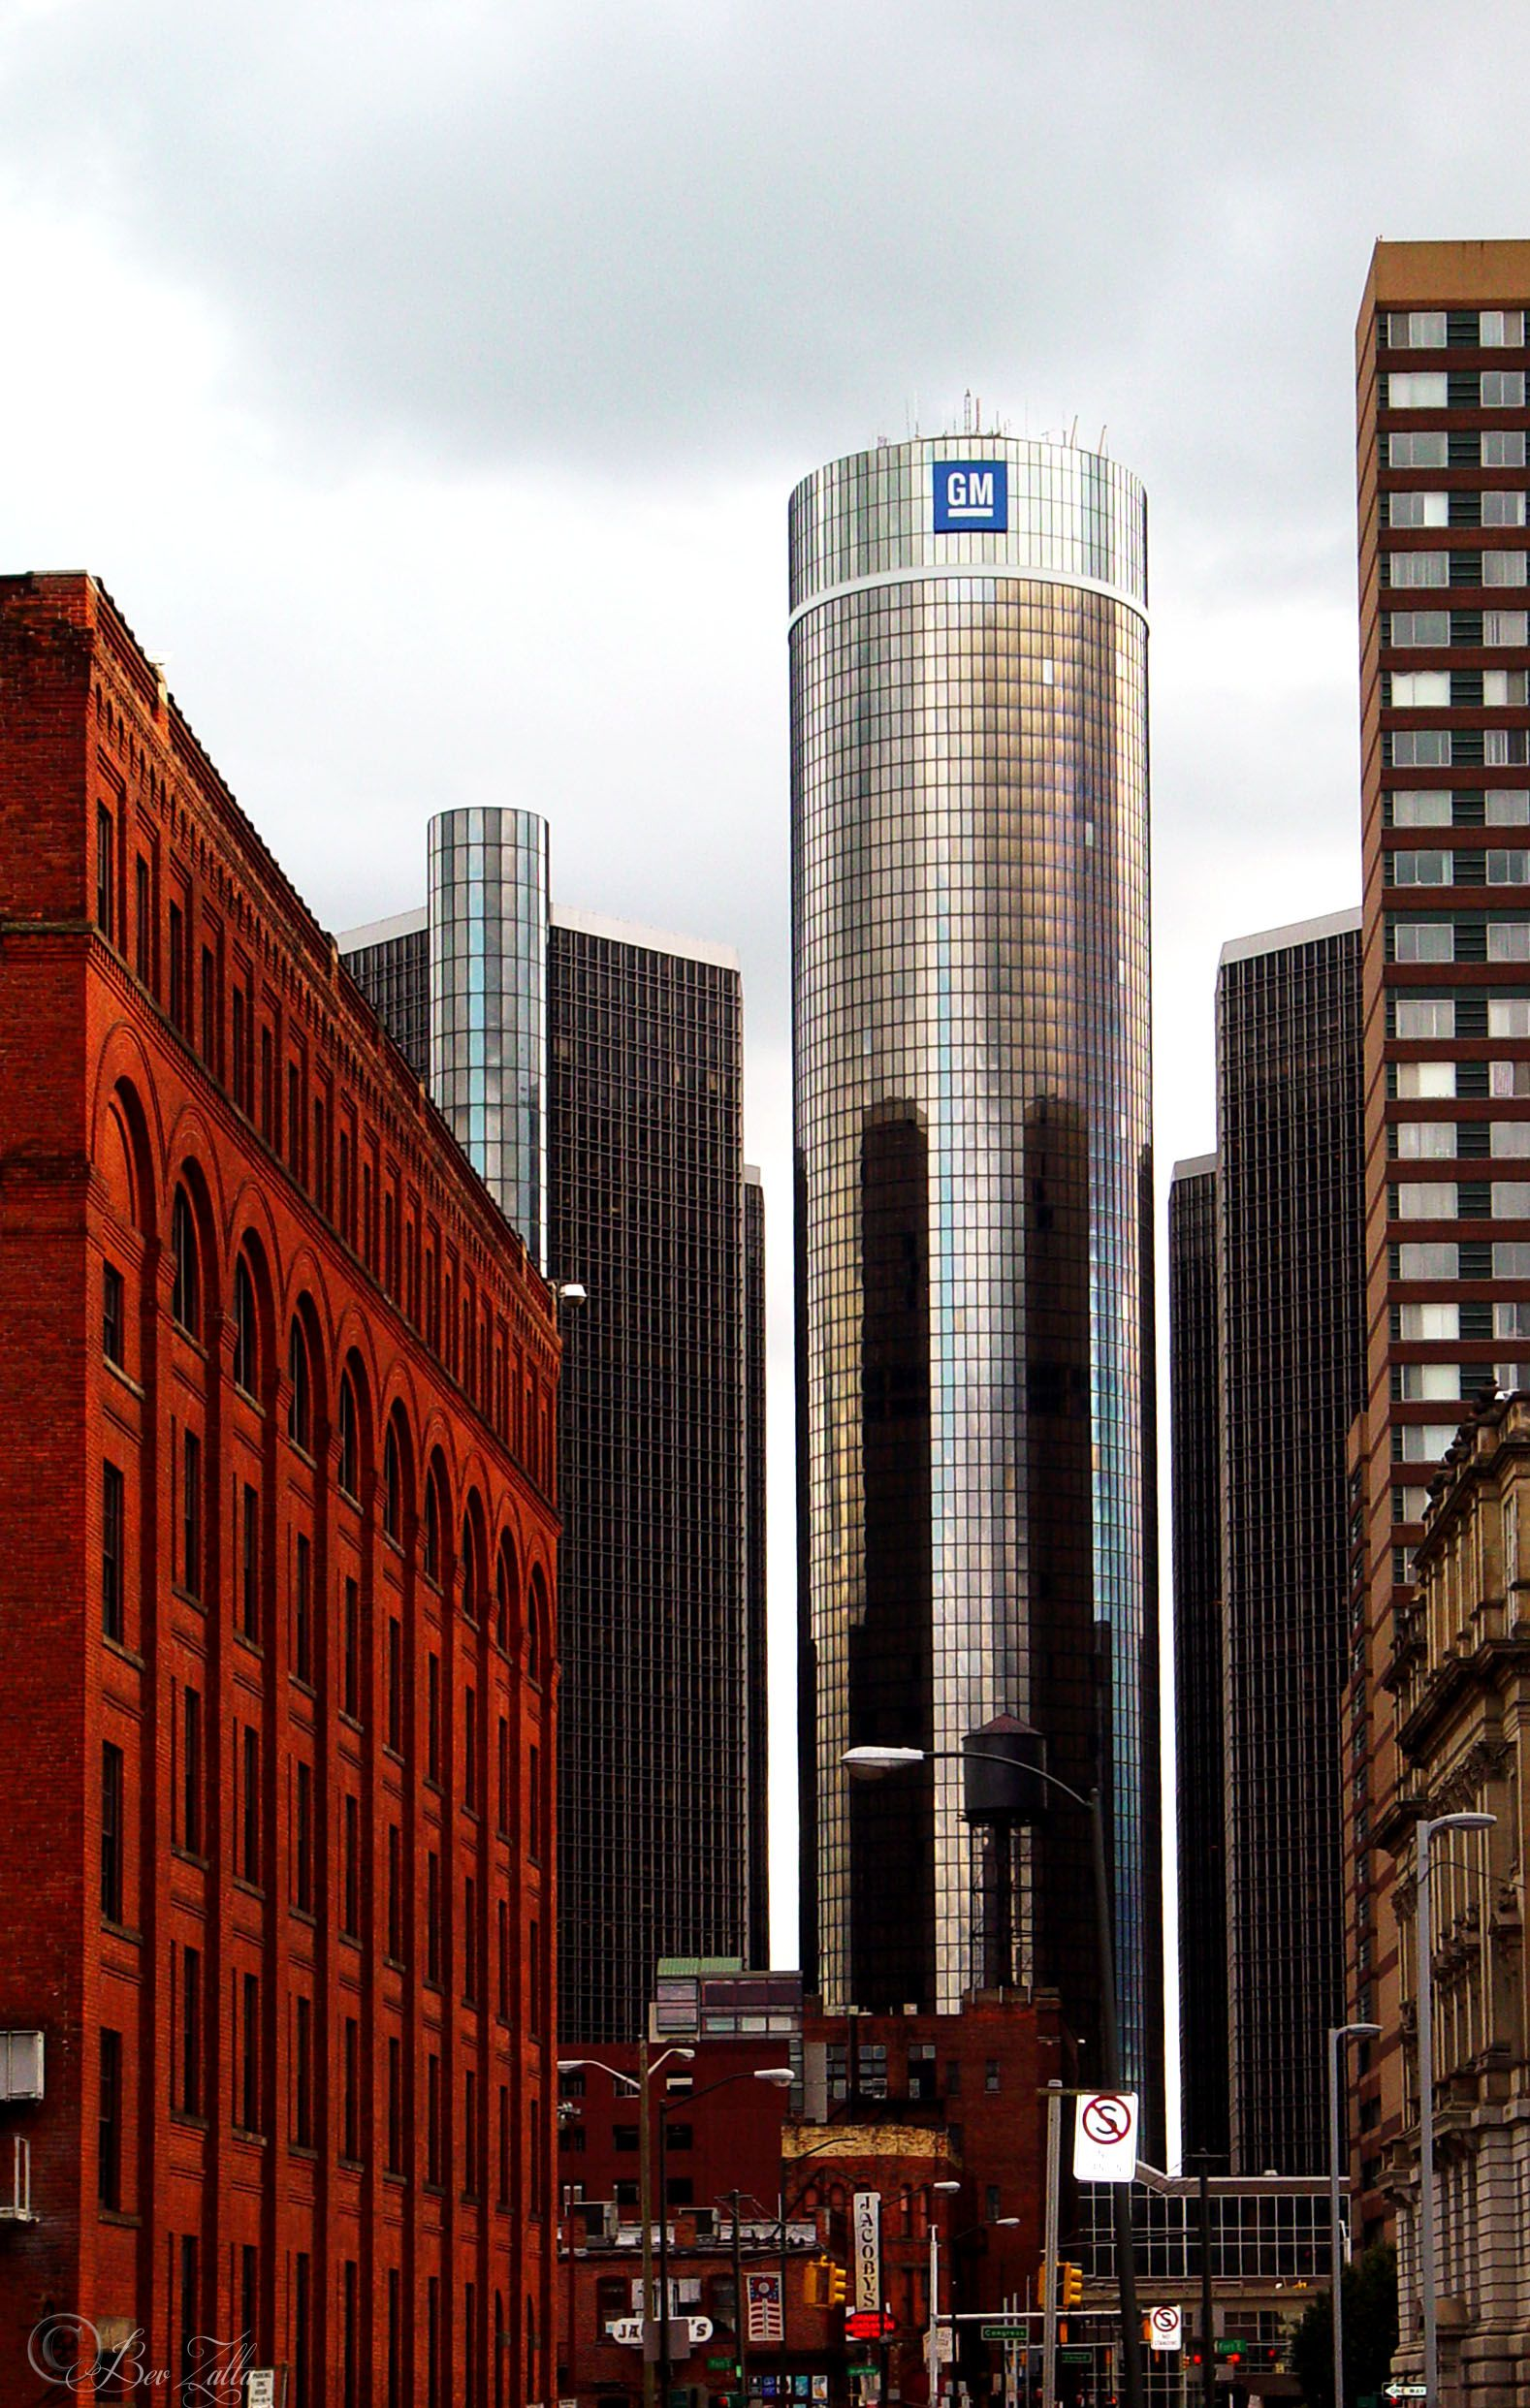 Detroit, Michigan, US. Downtown with old and new buildings ...